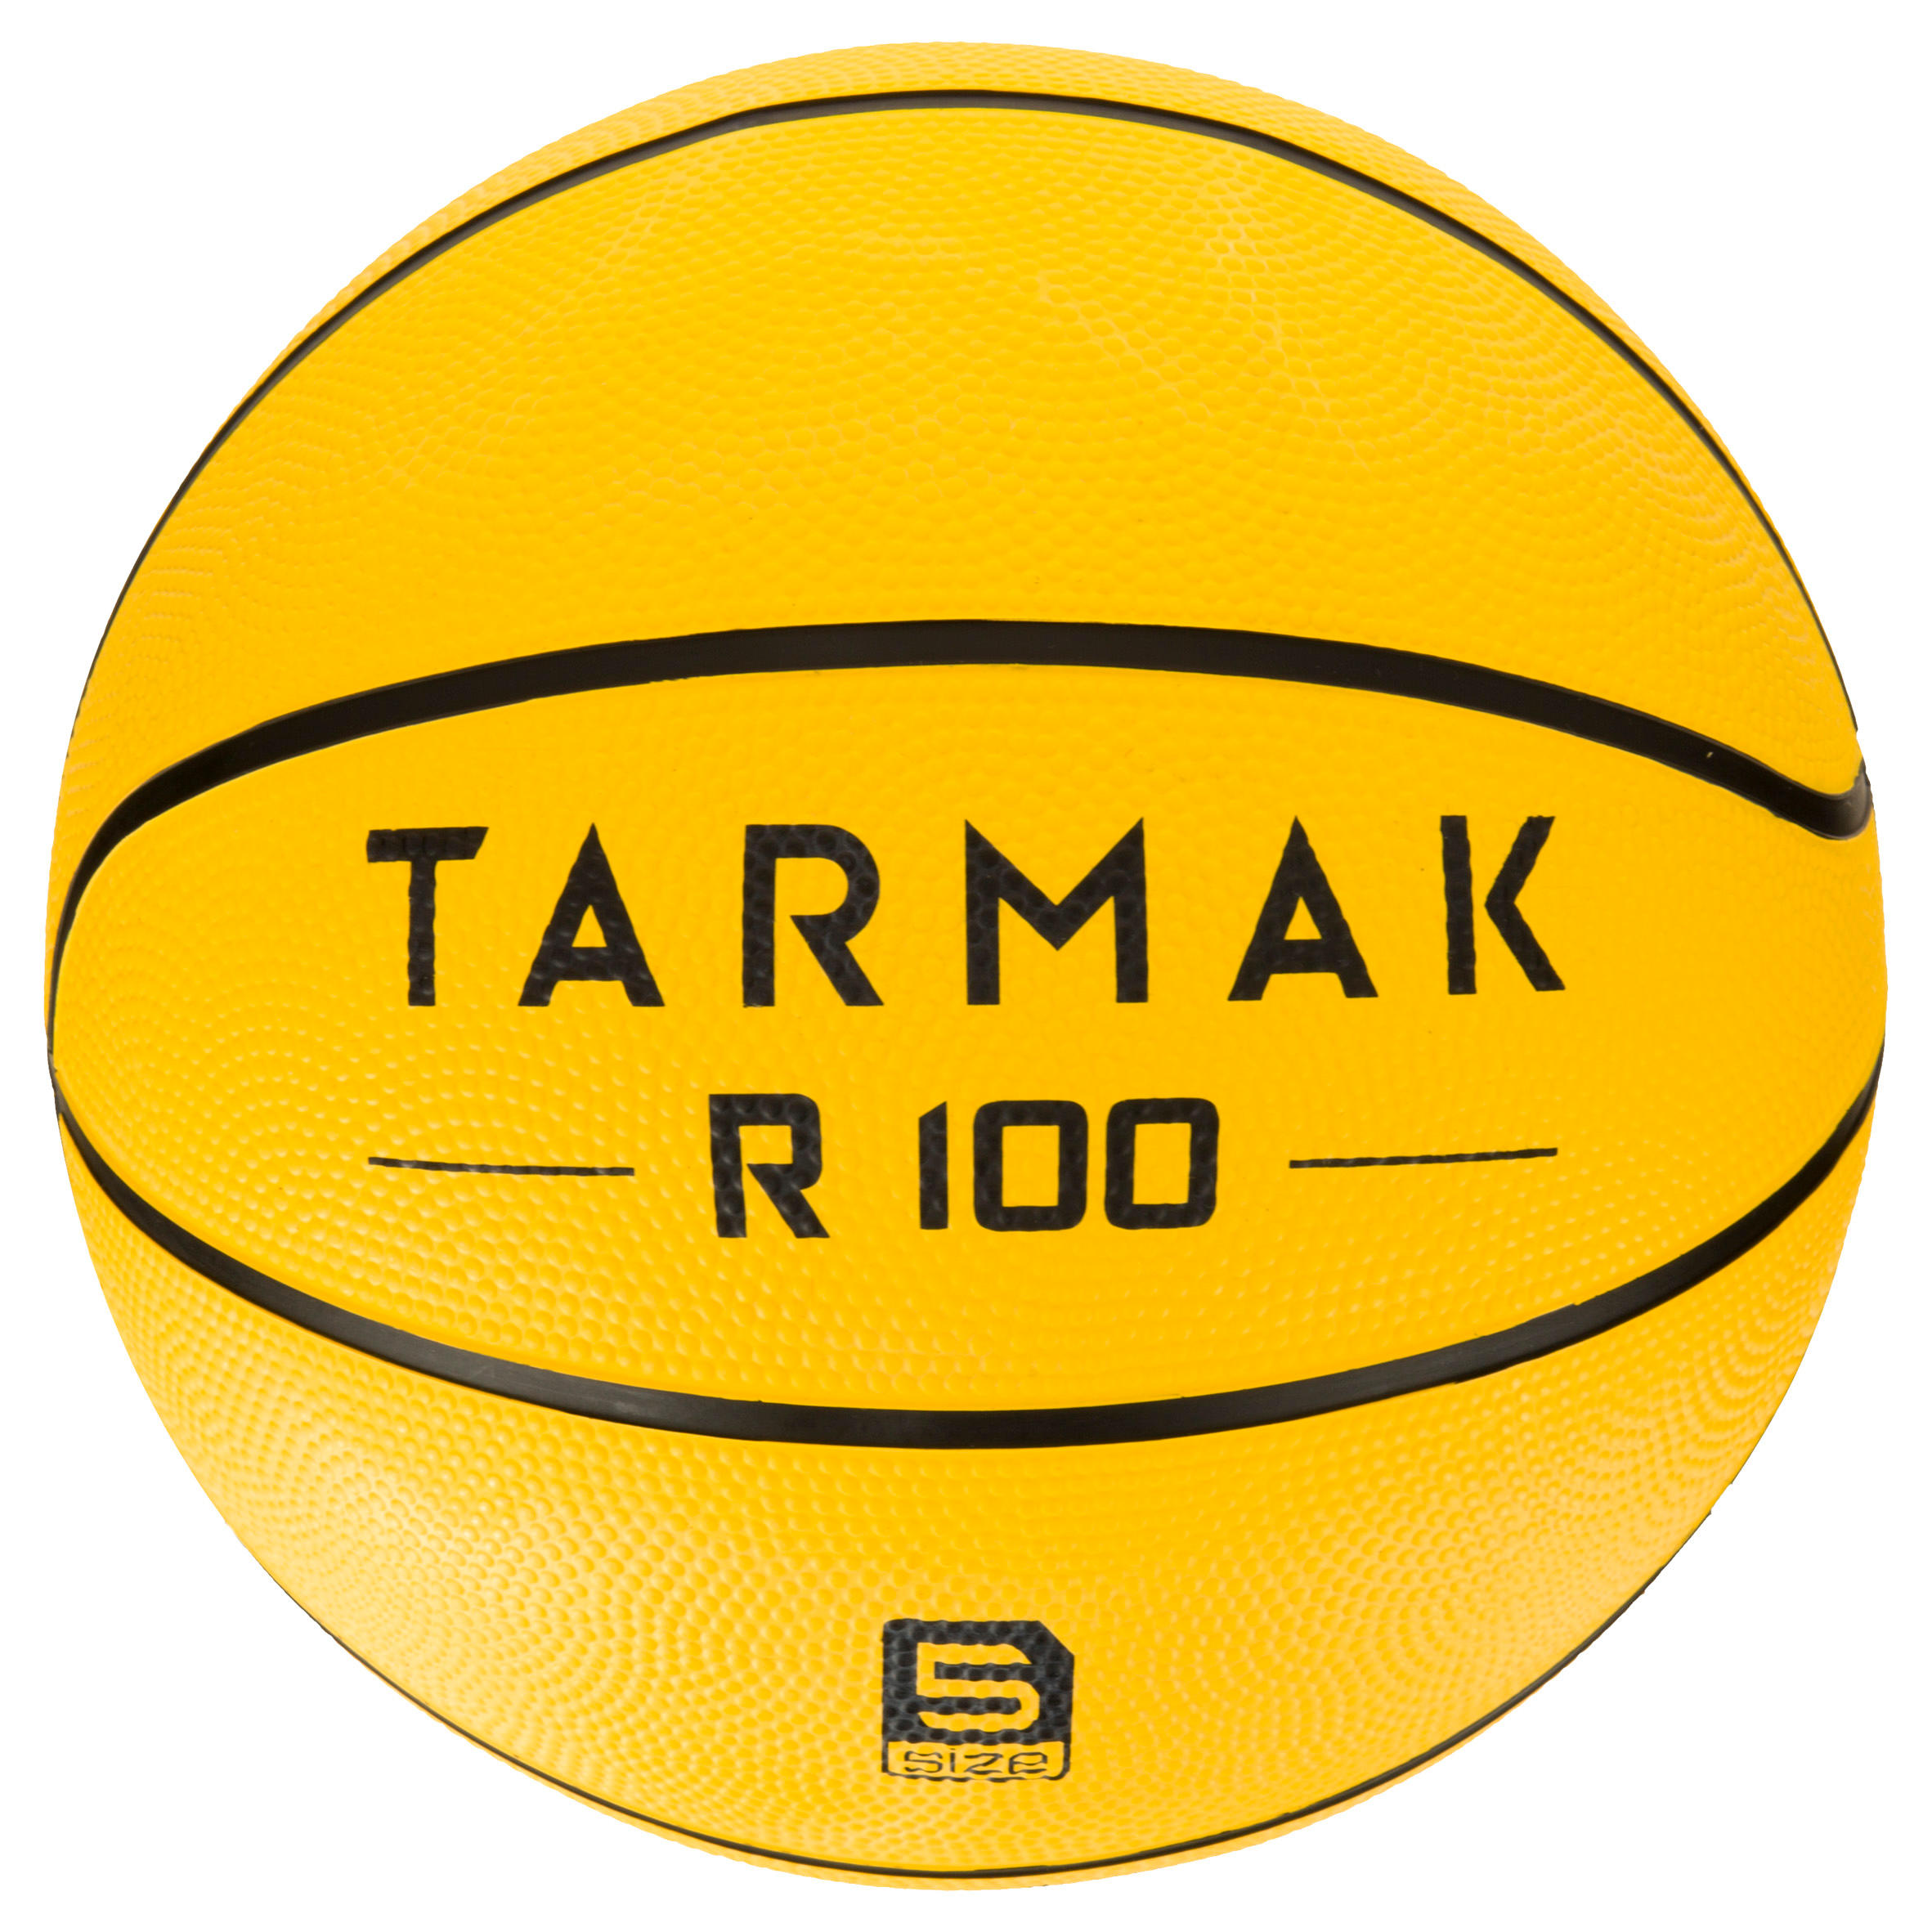 R100 Kids' Size 5 Basketball - Yellow Durable. For beginners.